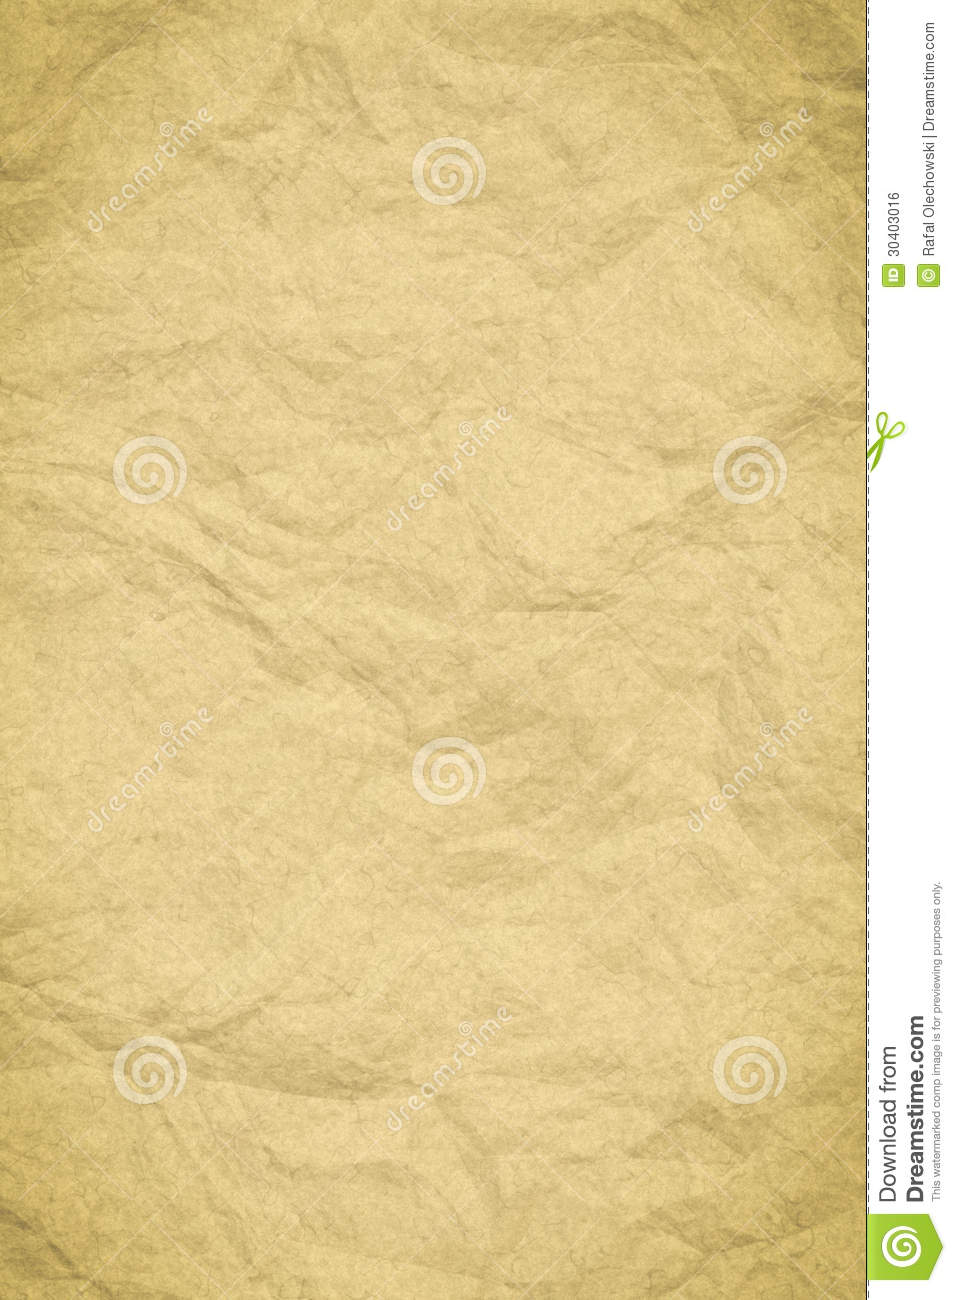 Old Paper Template Texture Royalty Free Stock Image   Image  30403016 ZATVp9PX